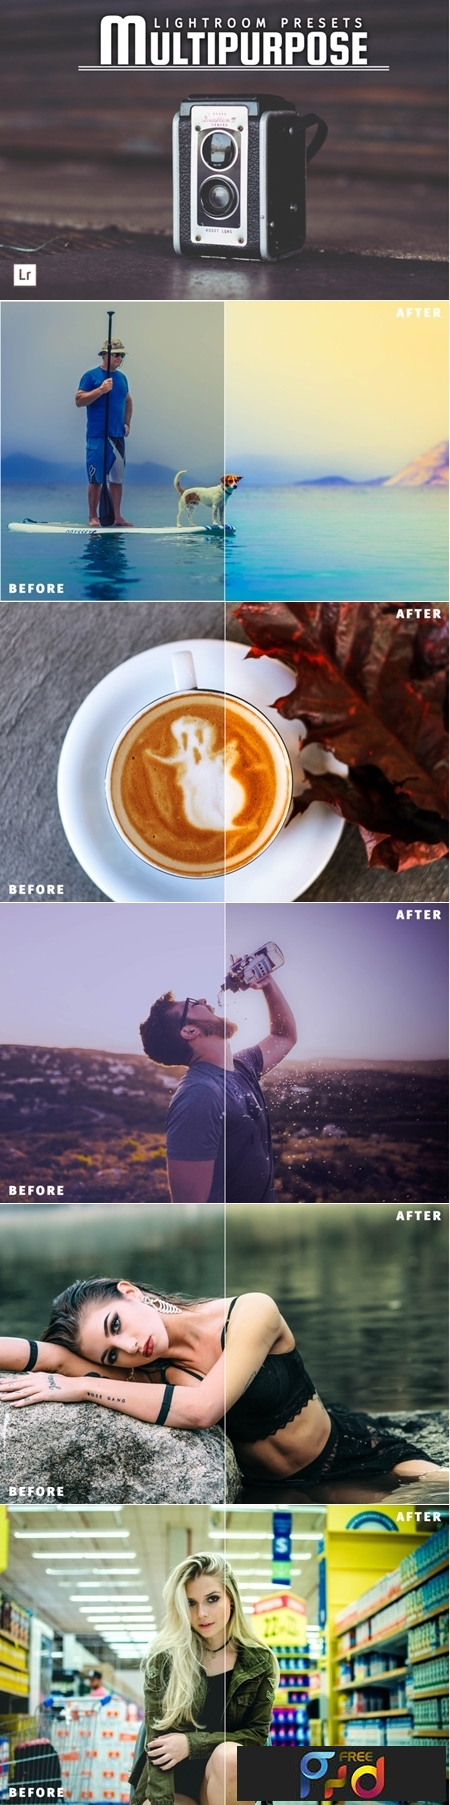 Multipurpose Lightroom Presets 3553634 1